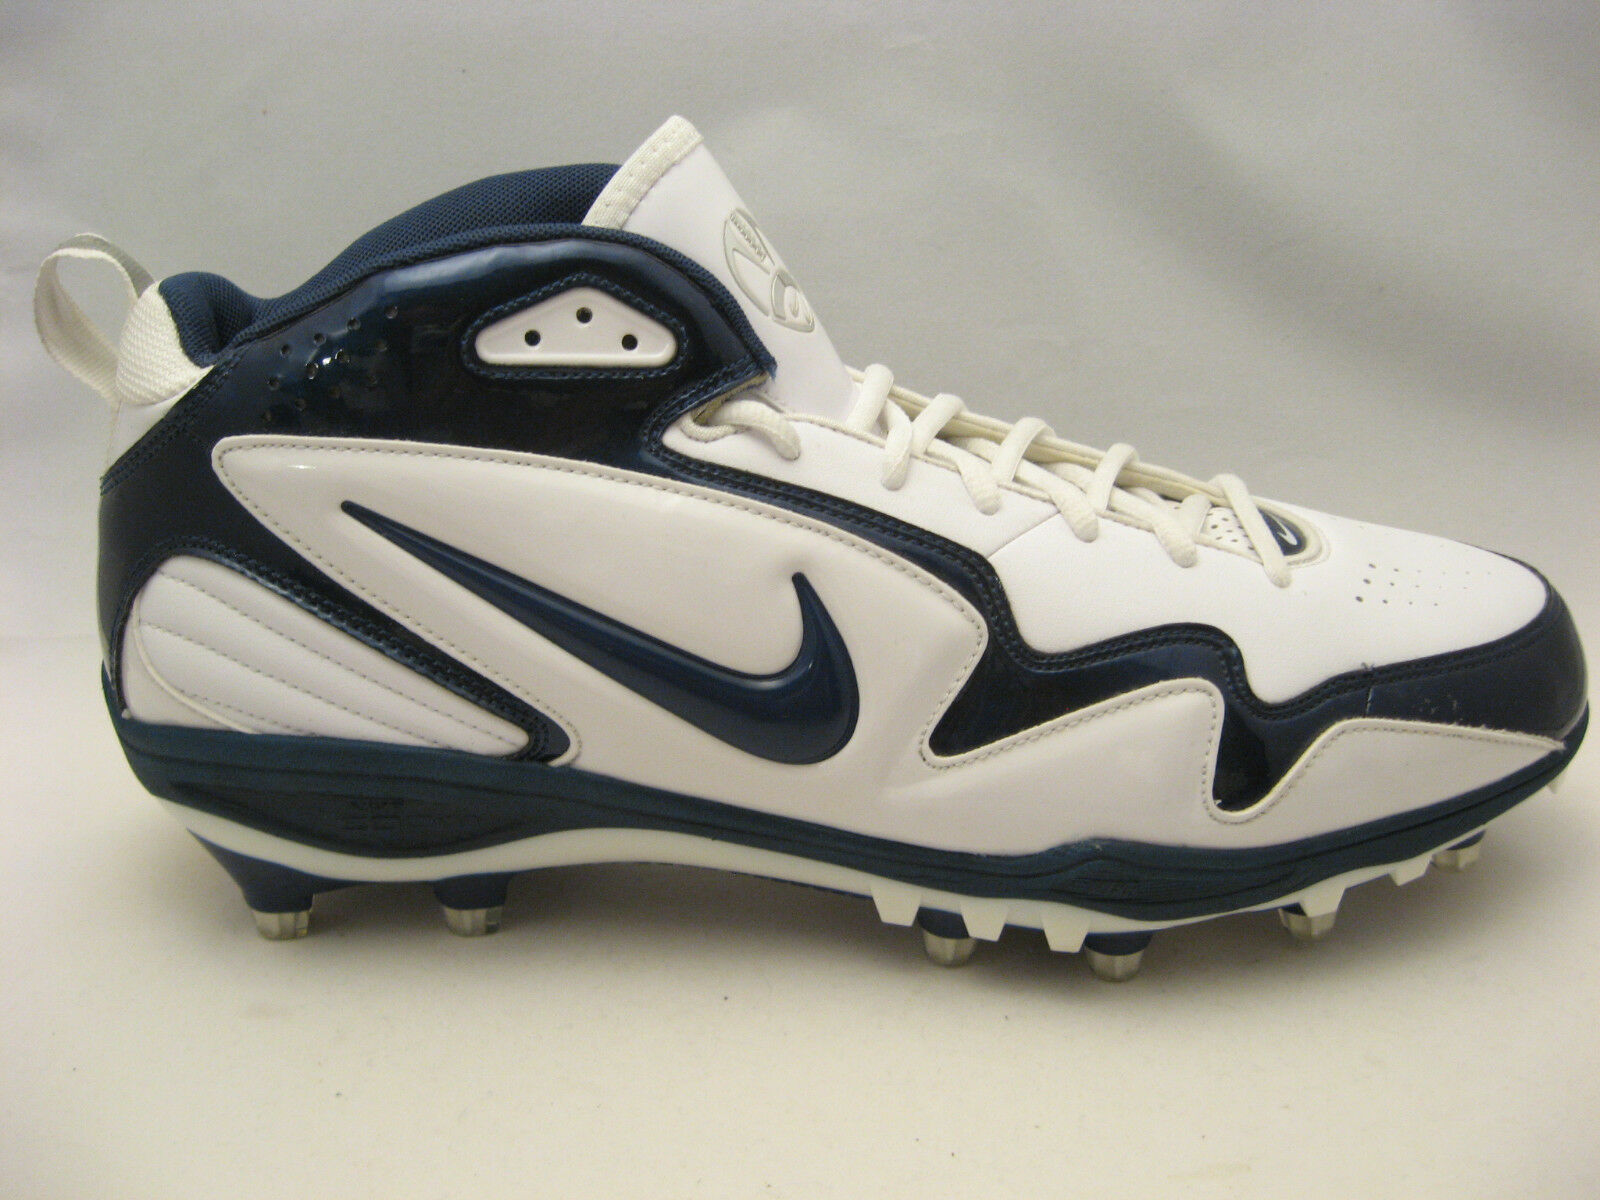 Nike Mens Zoom Merciless TD Football Cleats 15 White Navy Blue NEW Comfortable and good-looking